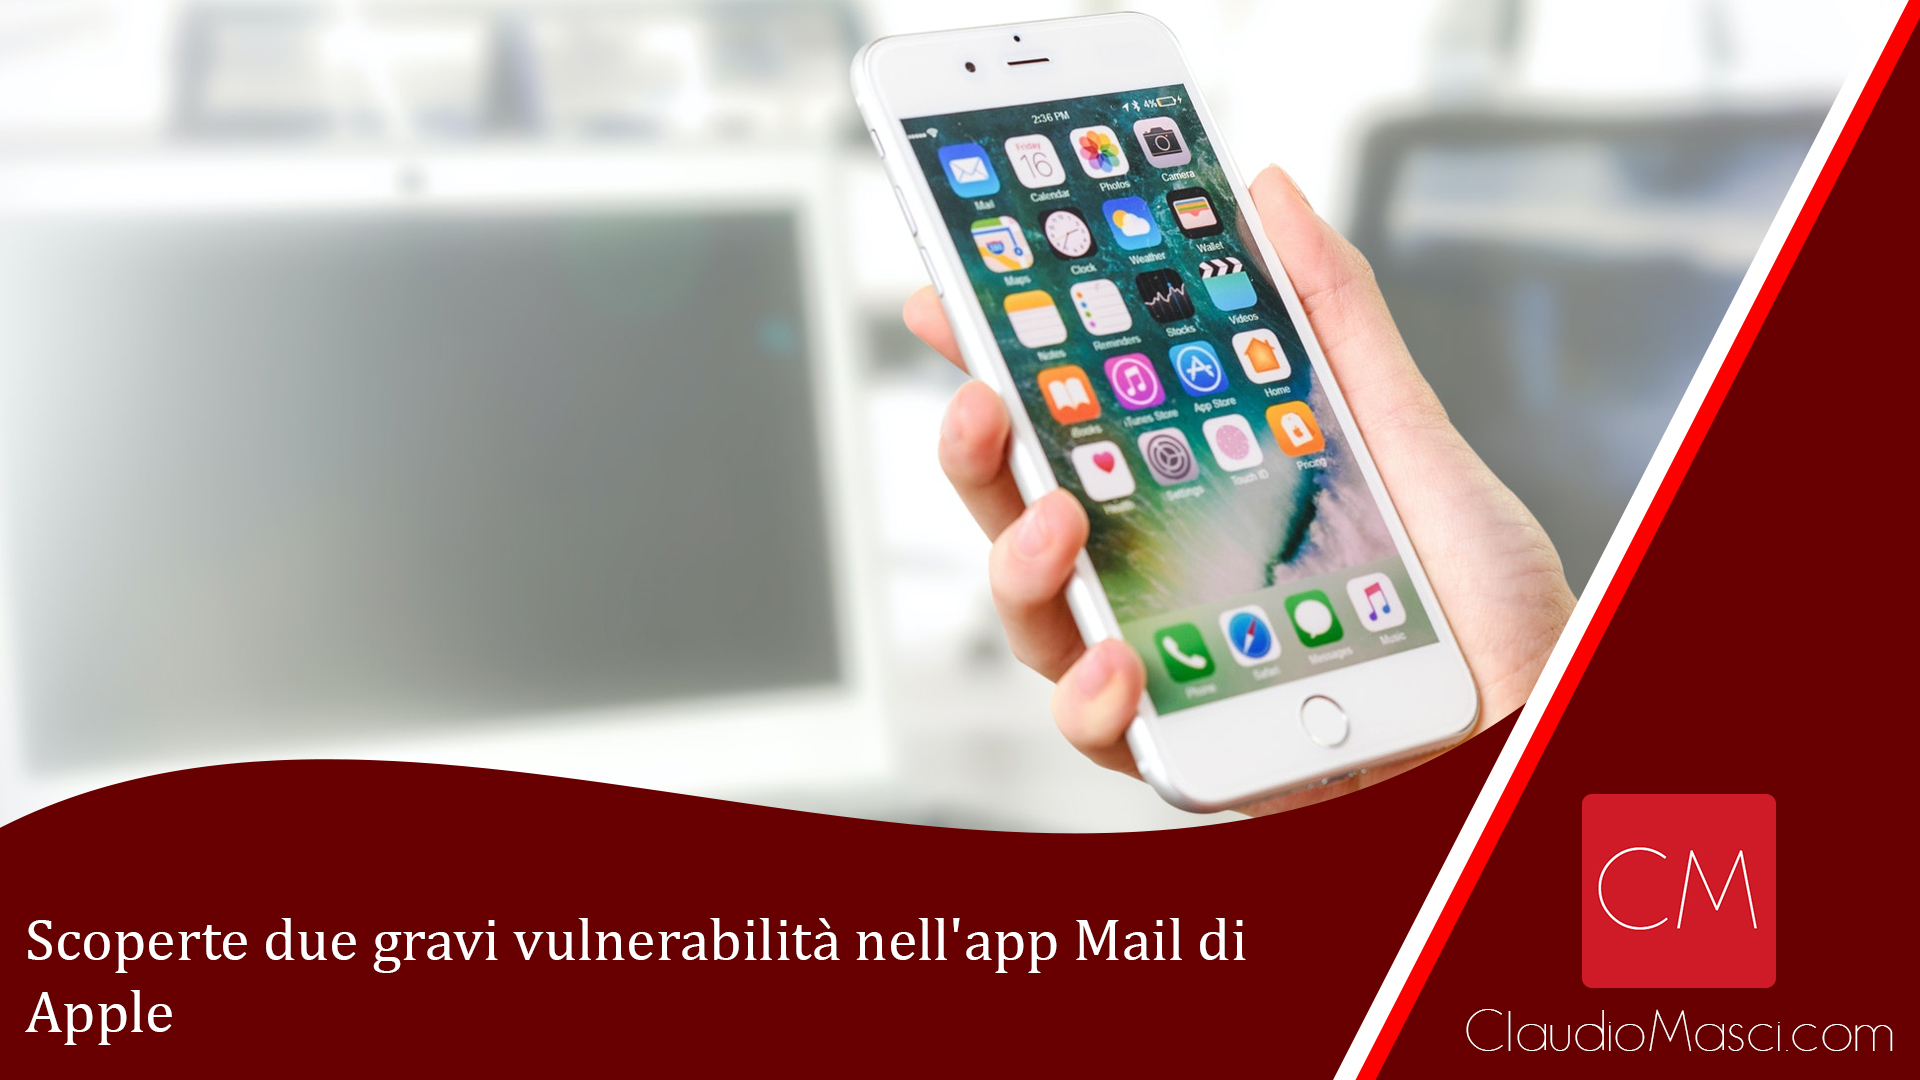 Scoperte due gravi vulnerabilità nell'app Mail di Apple